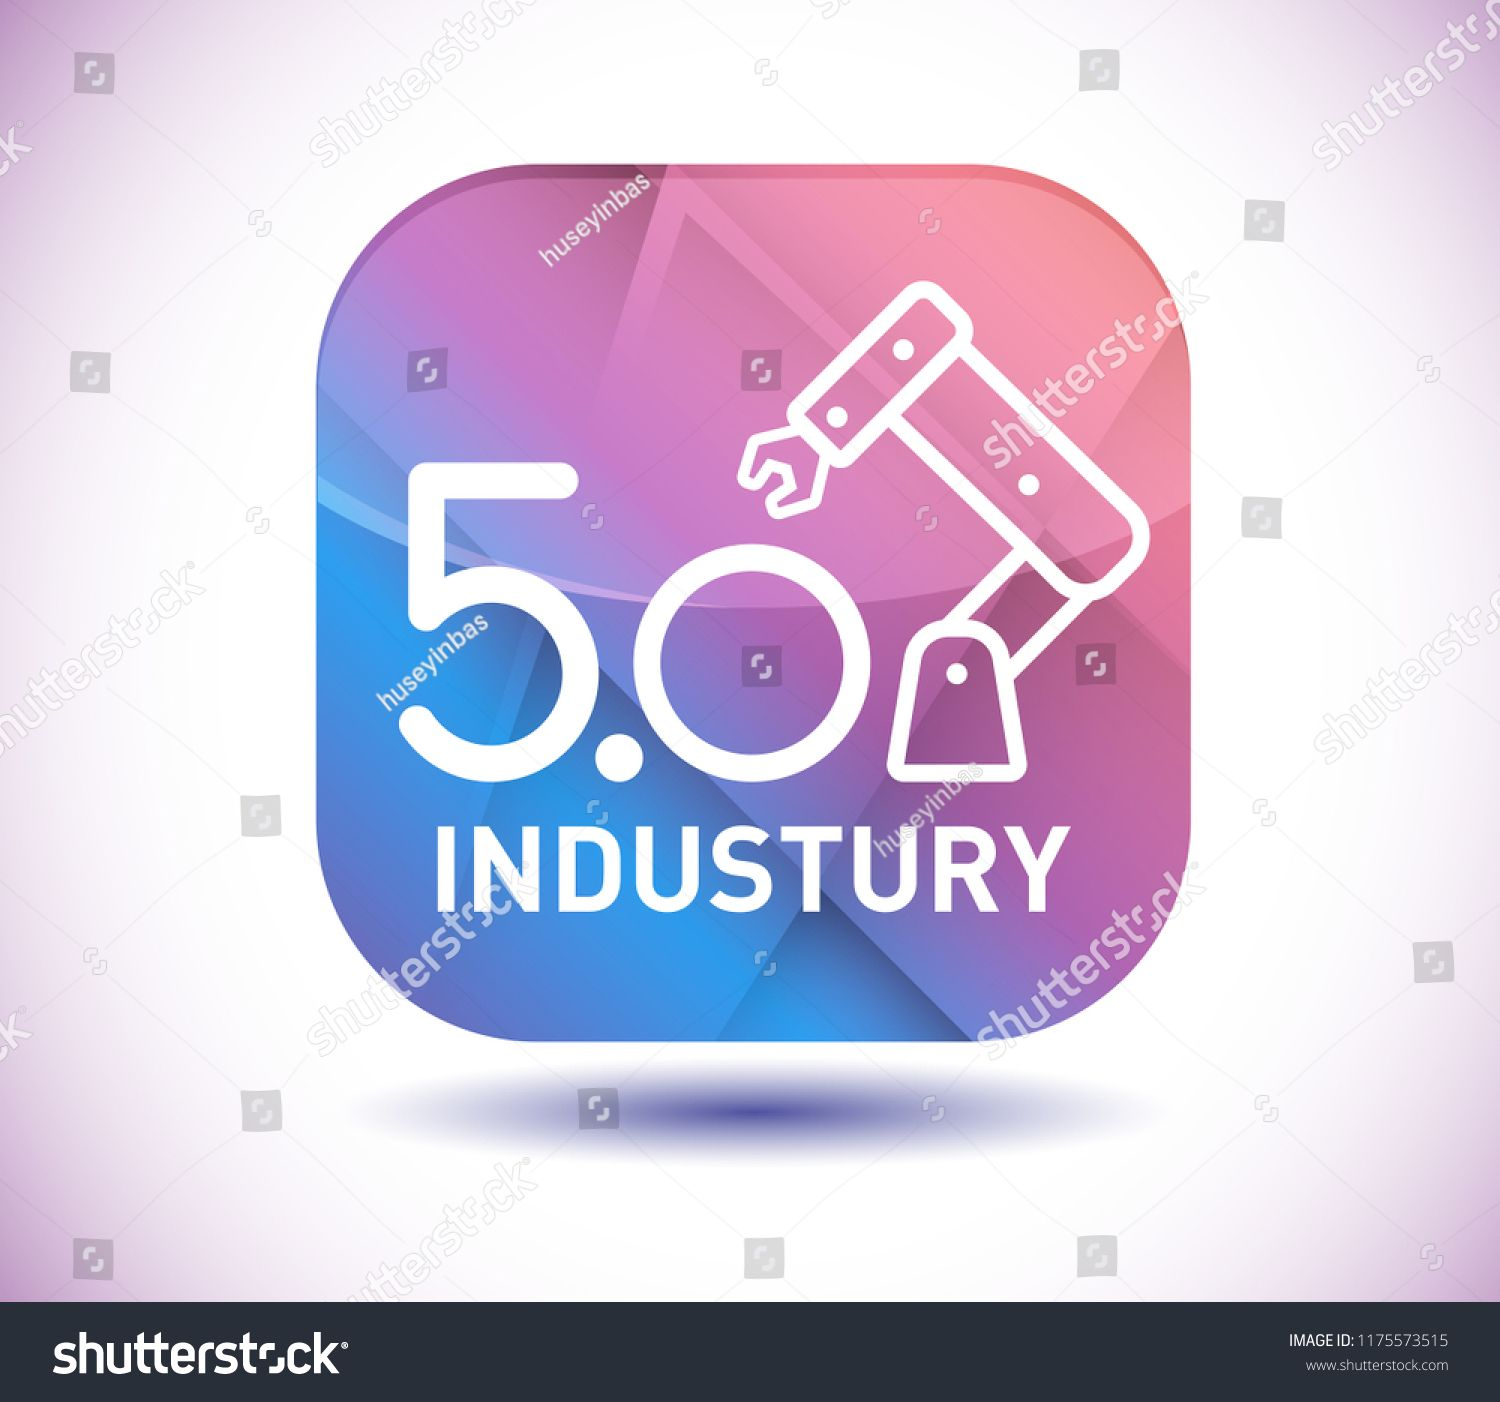 Industry 5.0 icon and vector button Sponsored ,